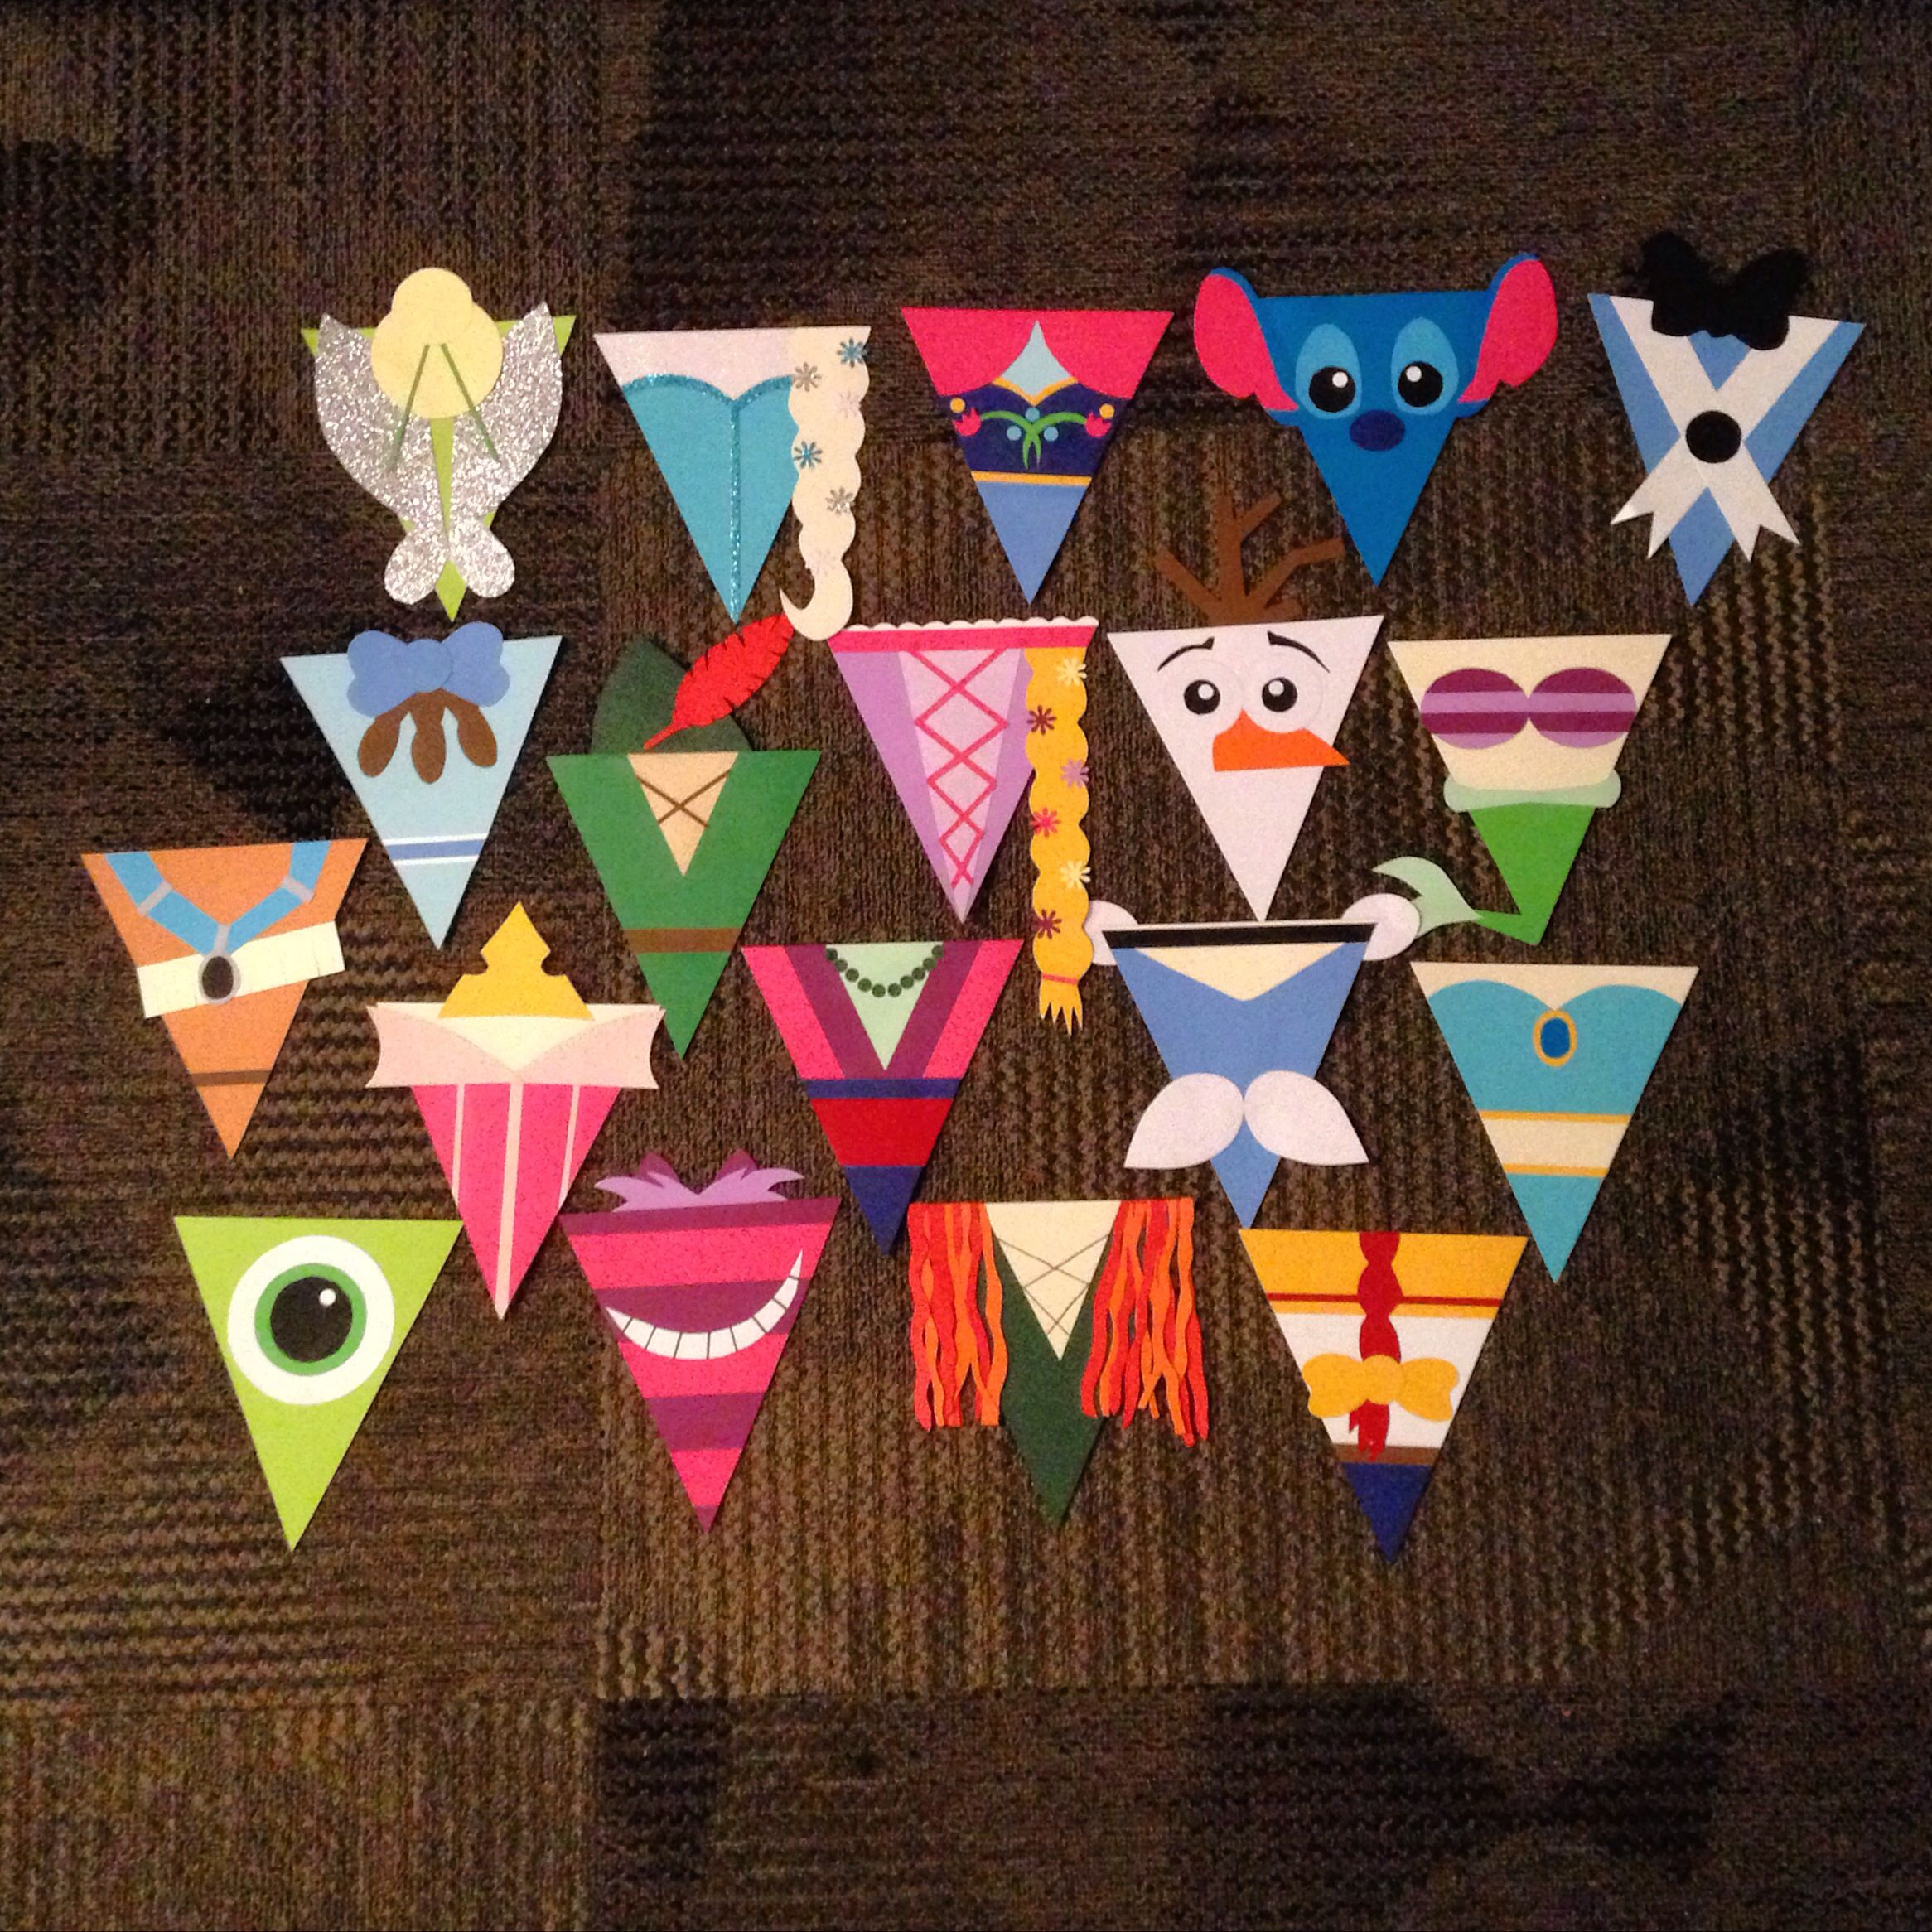 Disney Door Dec Pennants! So in love with how they turned out!